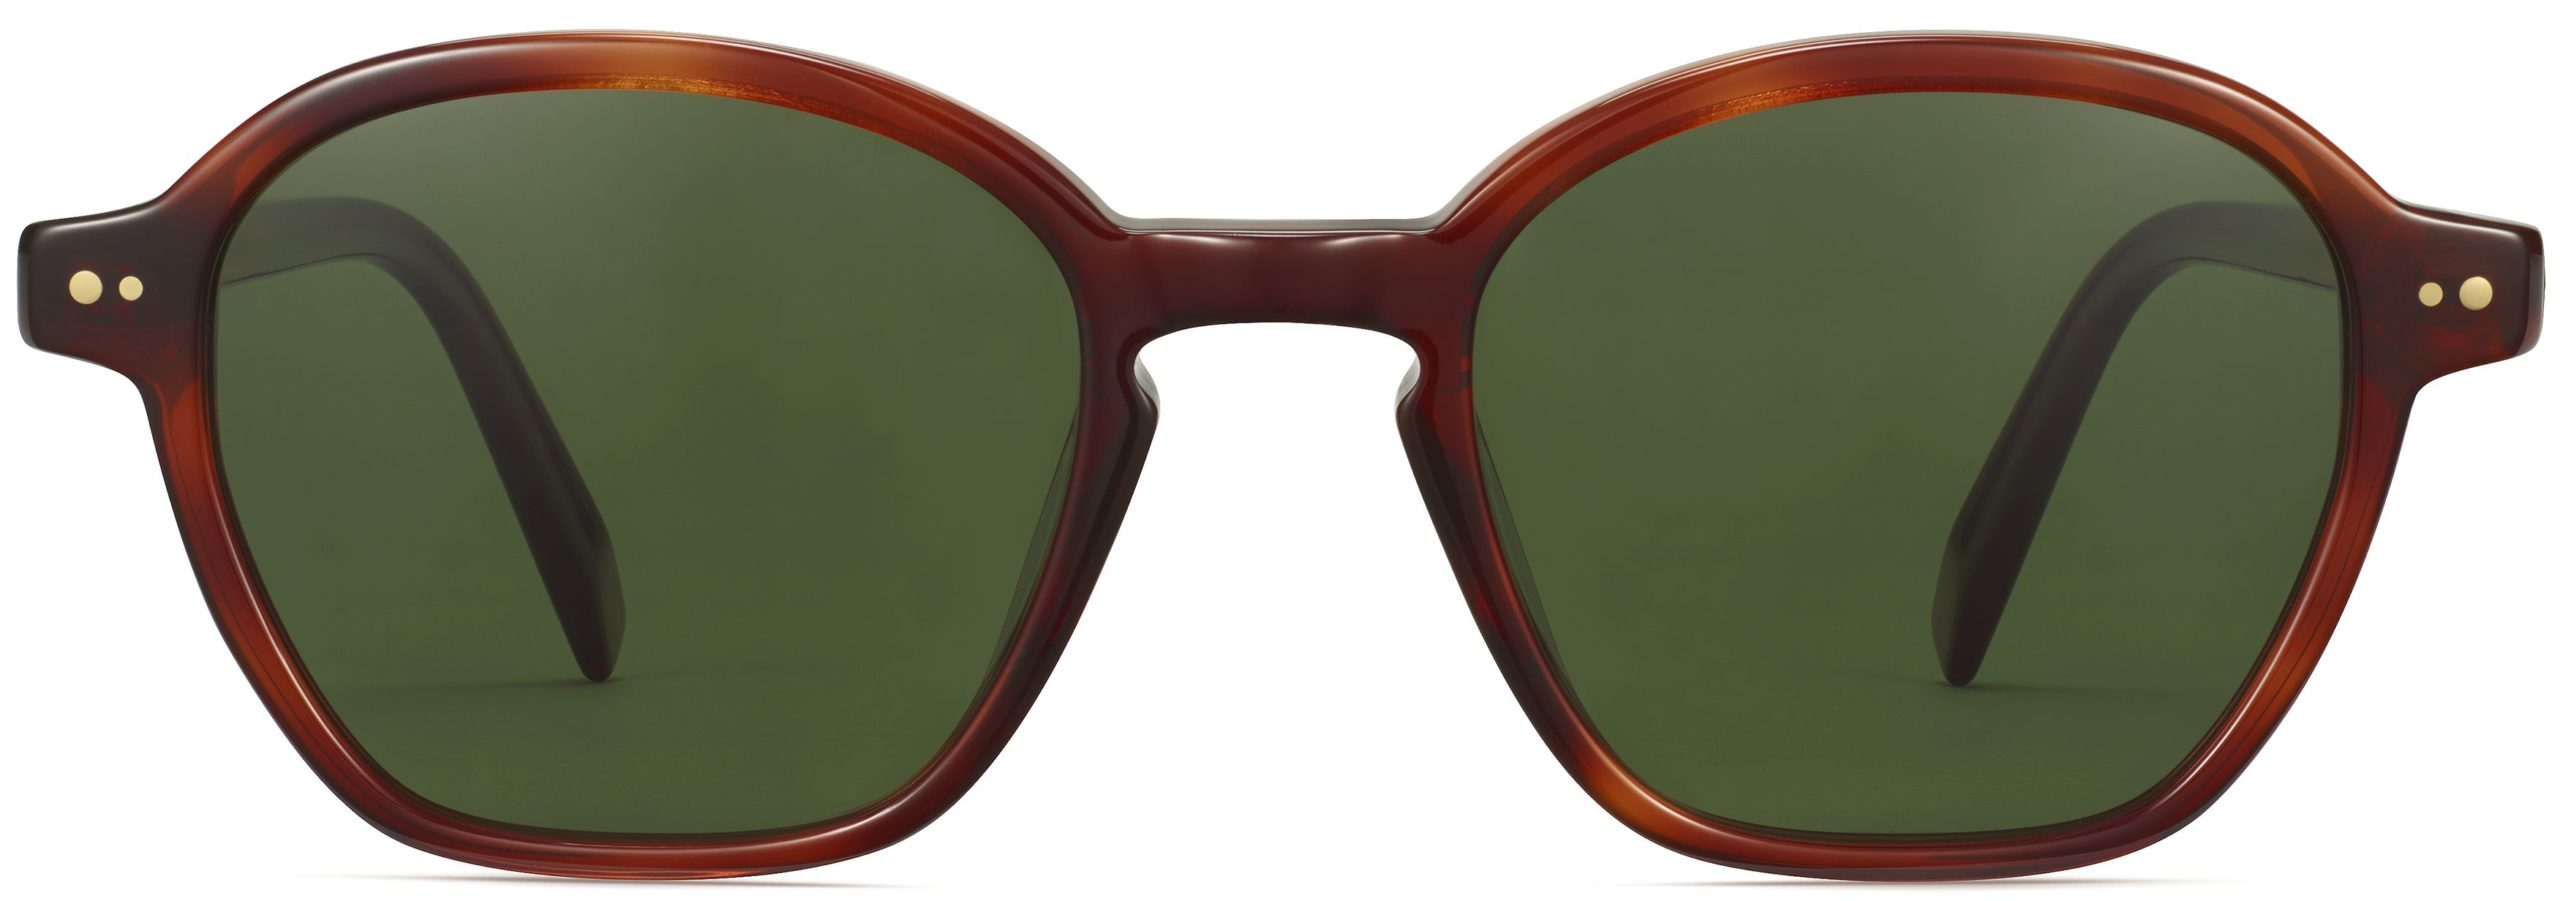 Front View Image of Britten Sunglasses Collection, by Warby Parker Brand, in Amber Tortoise Color